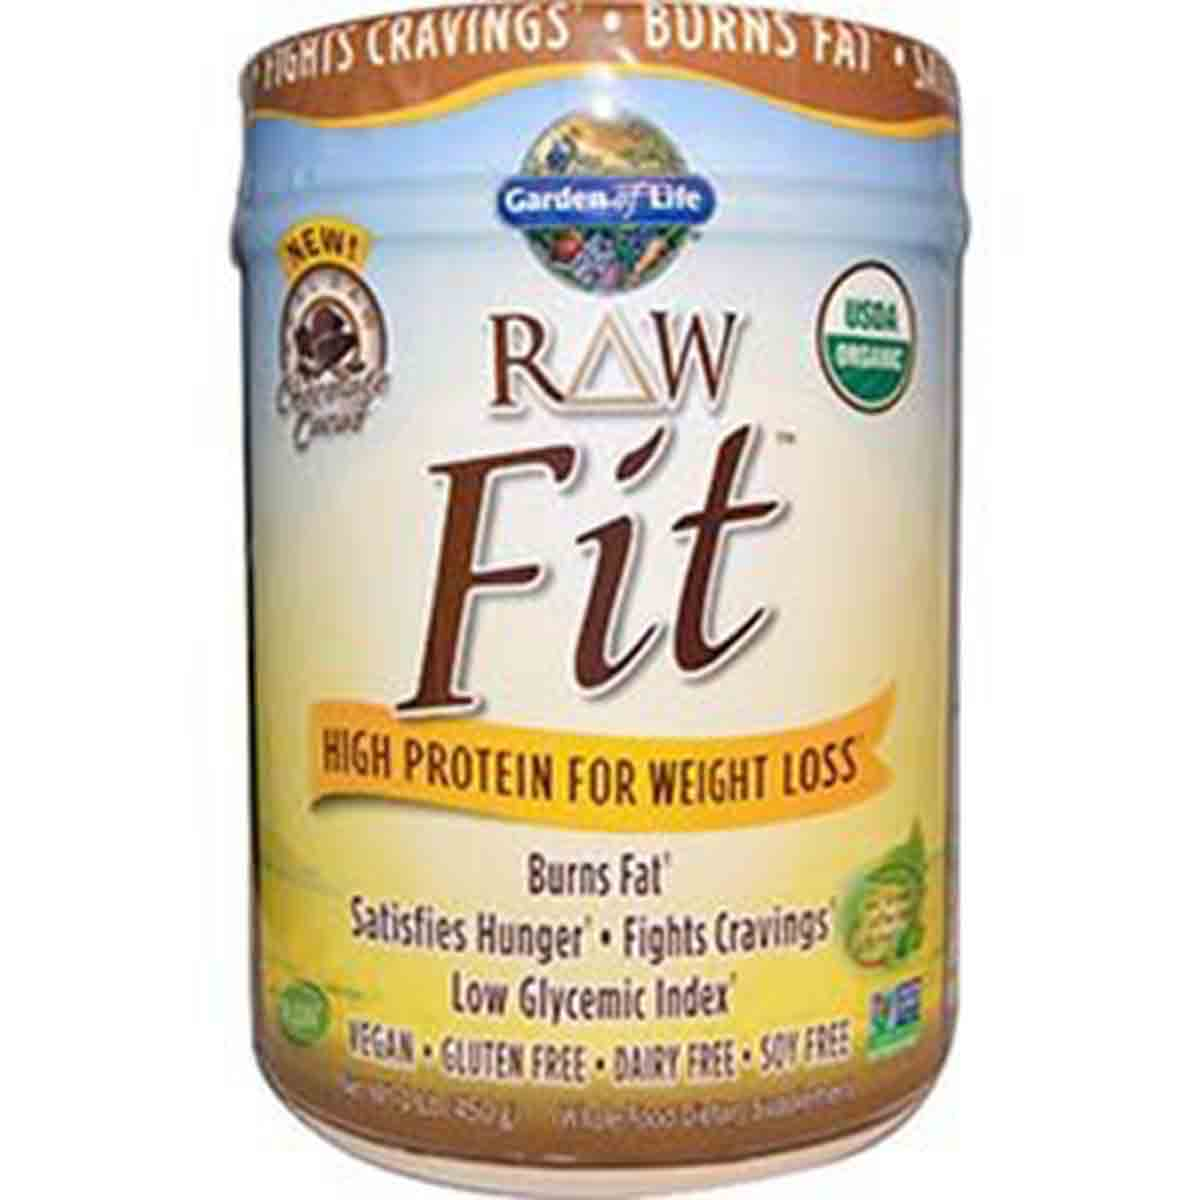 Garden of Life RAW Fit